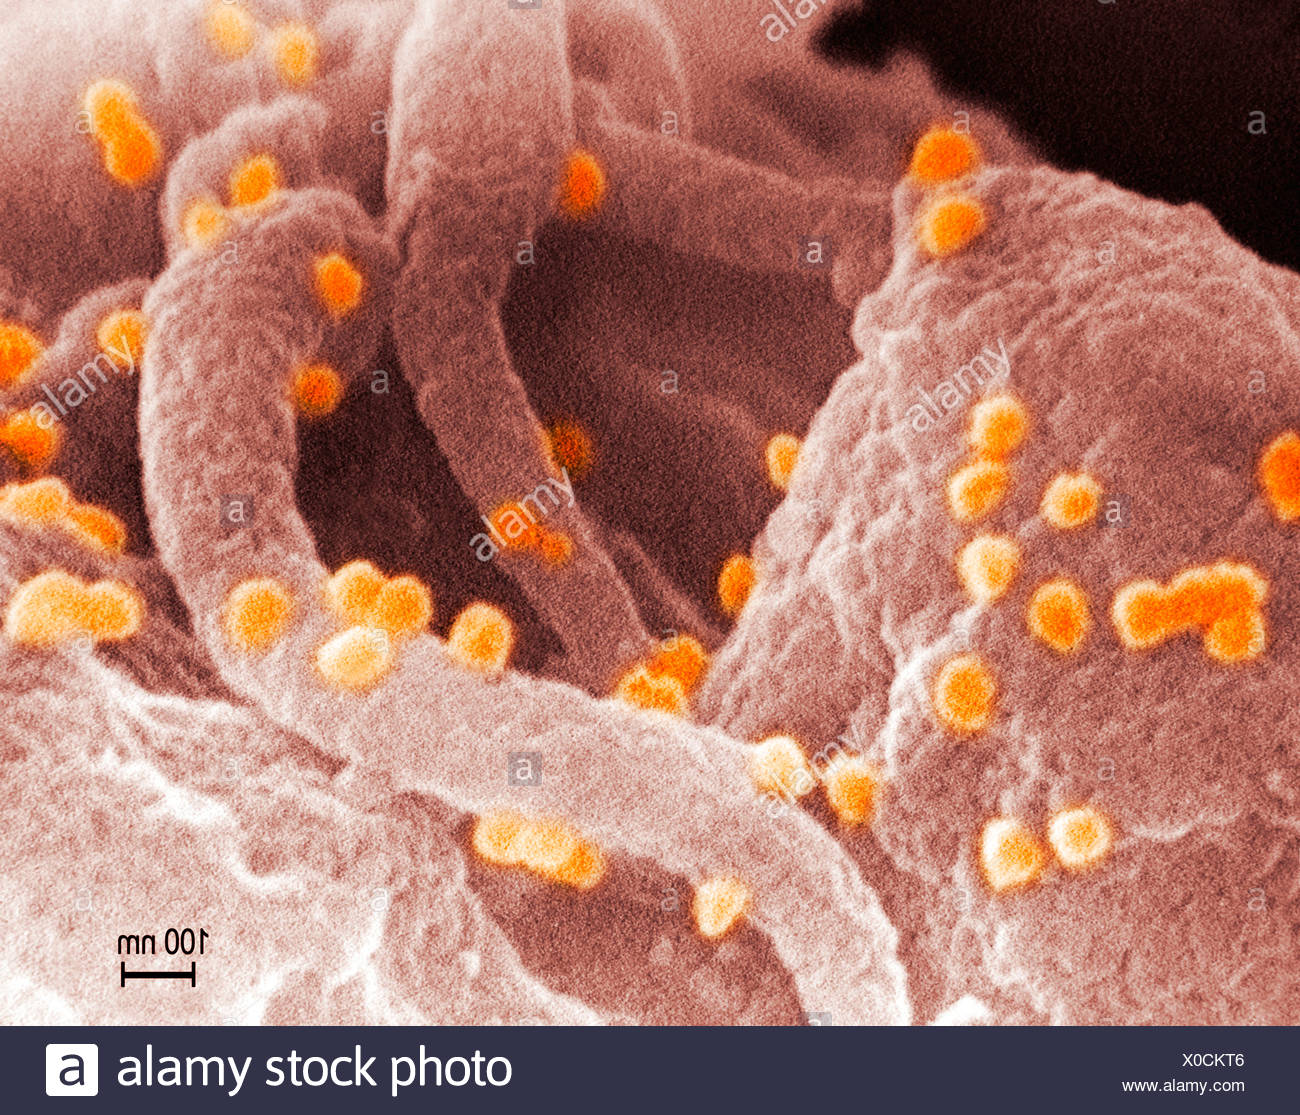 HIV-1 and human lymphocytes - Stock Image